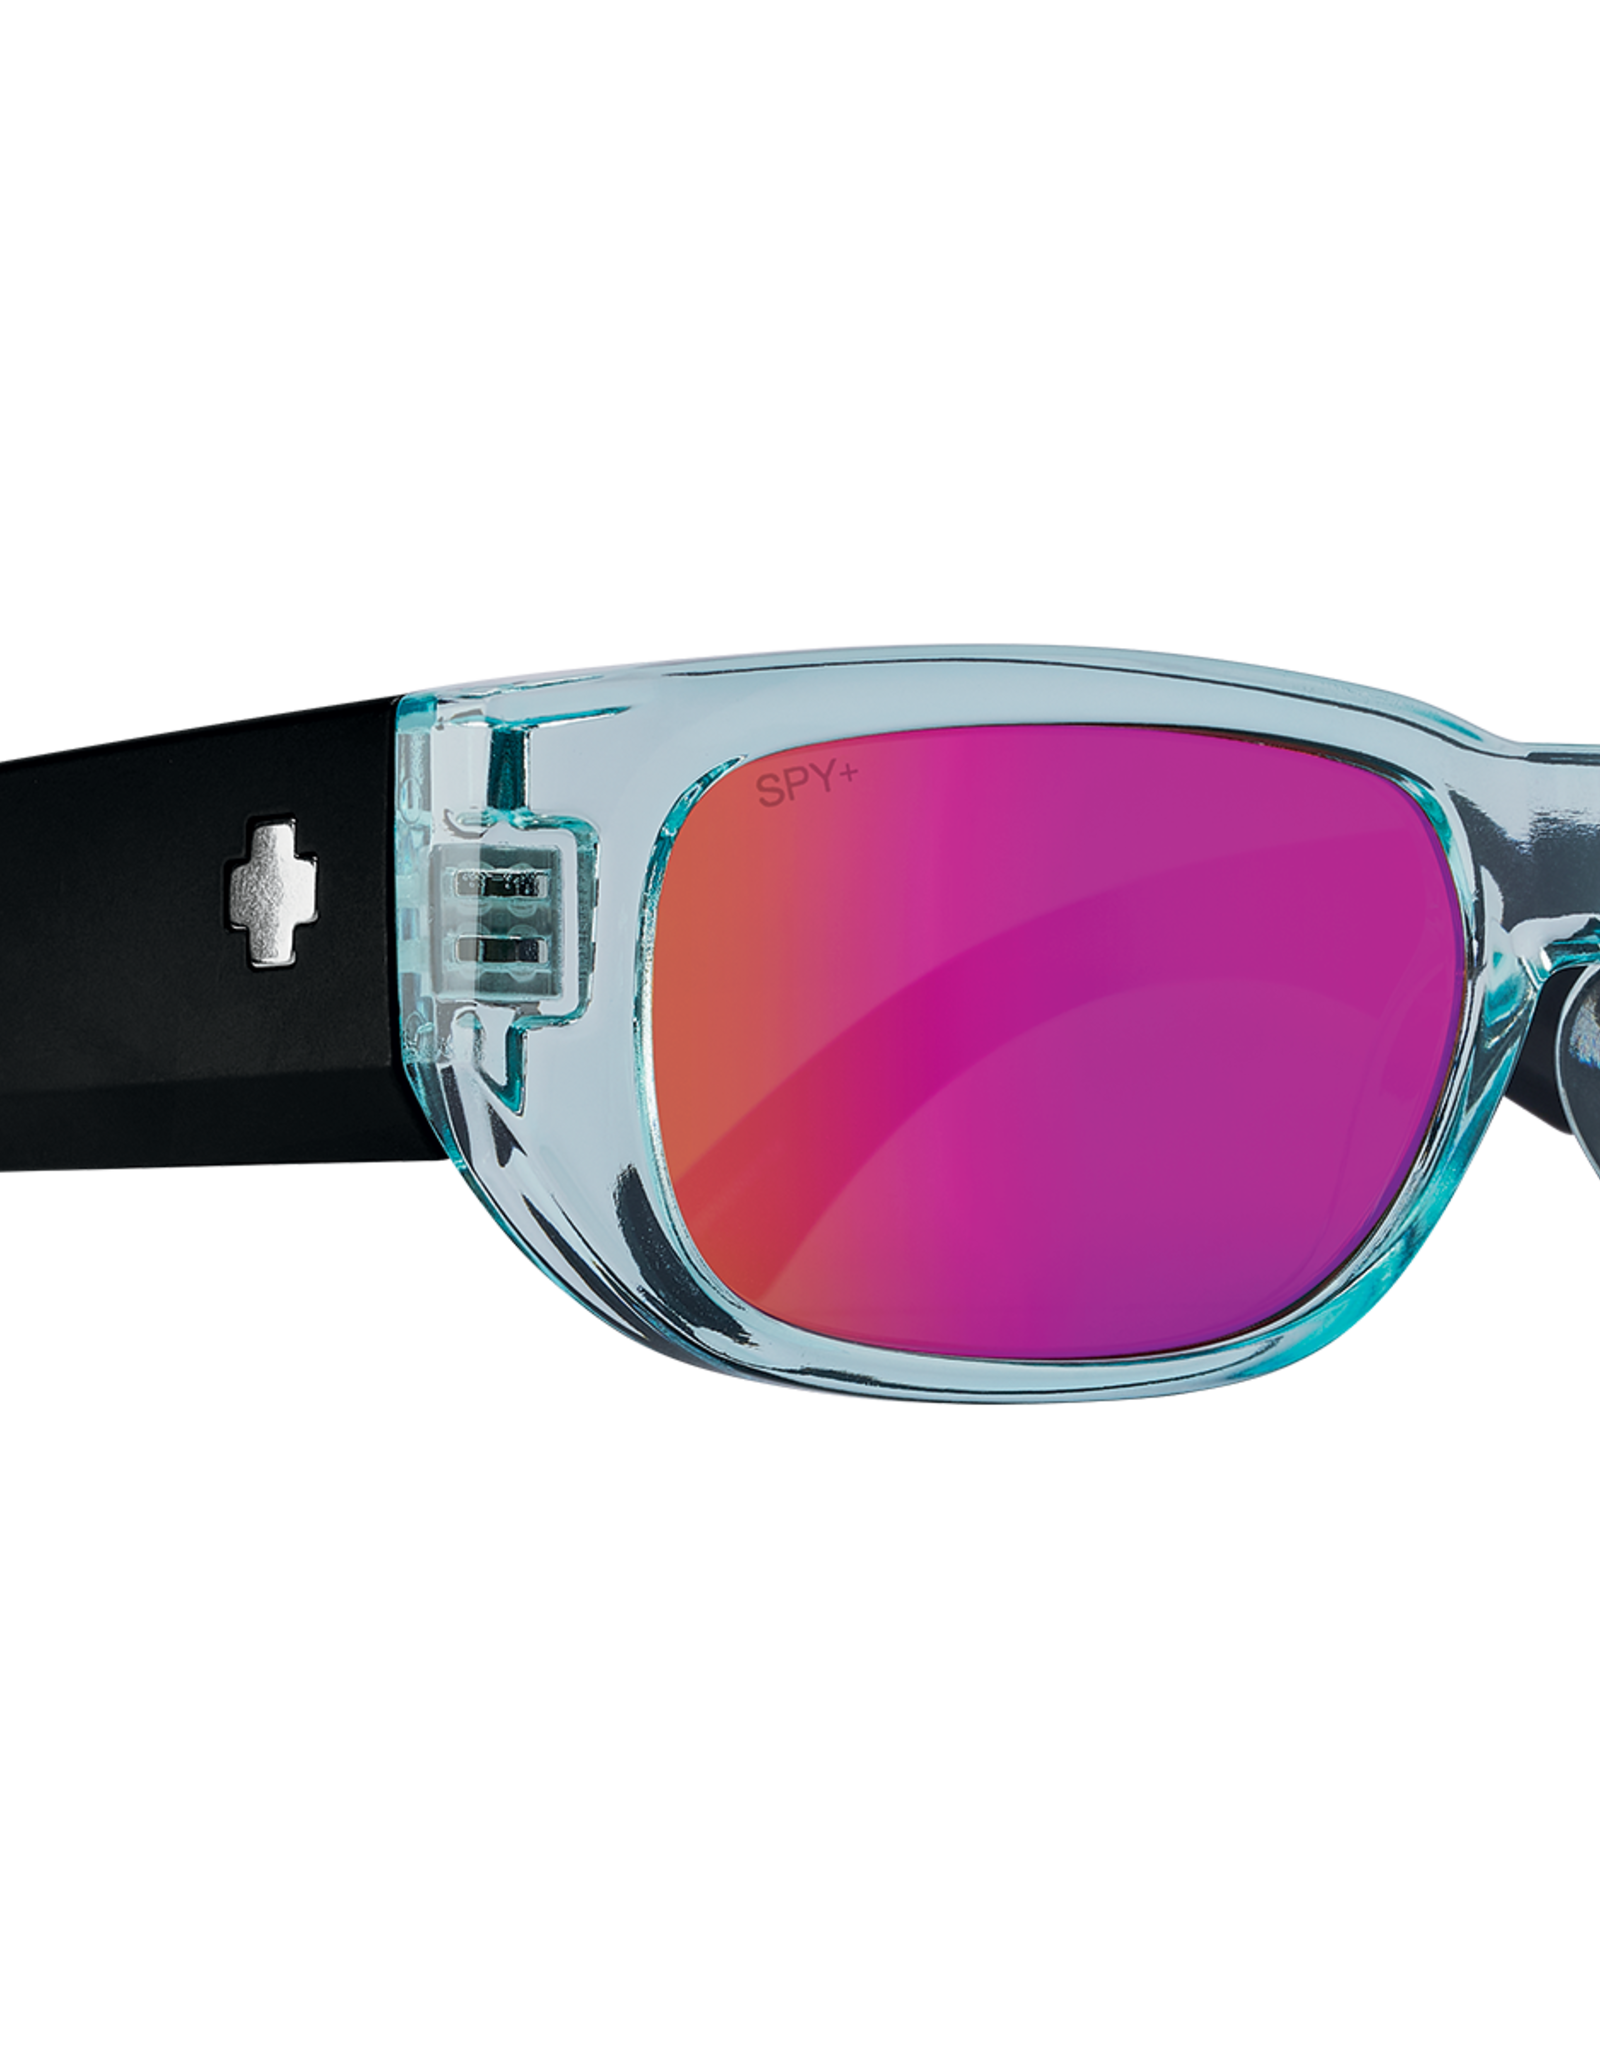 SPY GENRE TRANS AQUA AND MATTE BLACK/ HAPPY GRAY WITH PURPLE SPECT